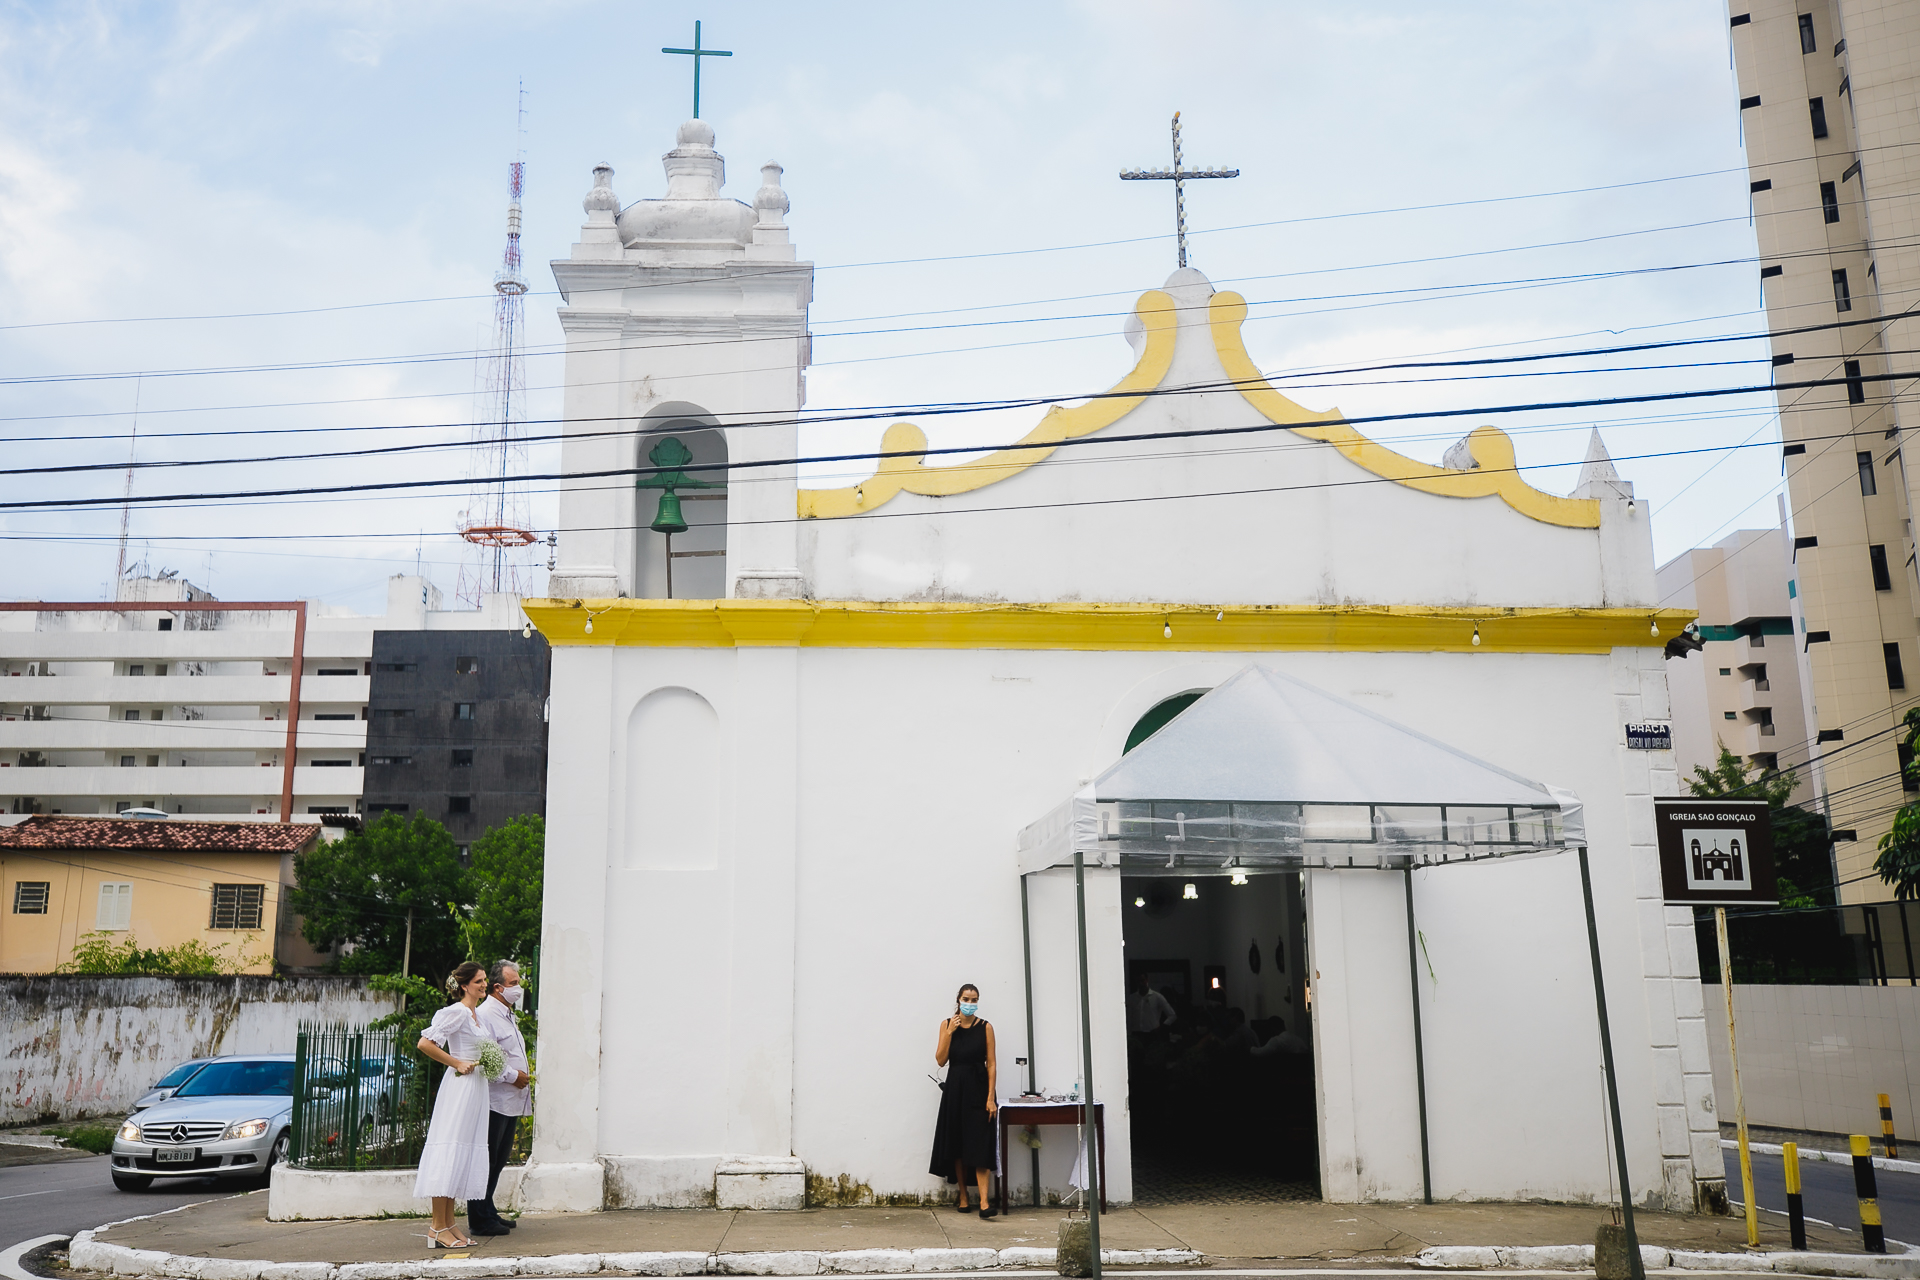 Church of São Gonçalo in Maceio Wedding Photography | The bride waits with her father outside the entrance of the church